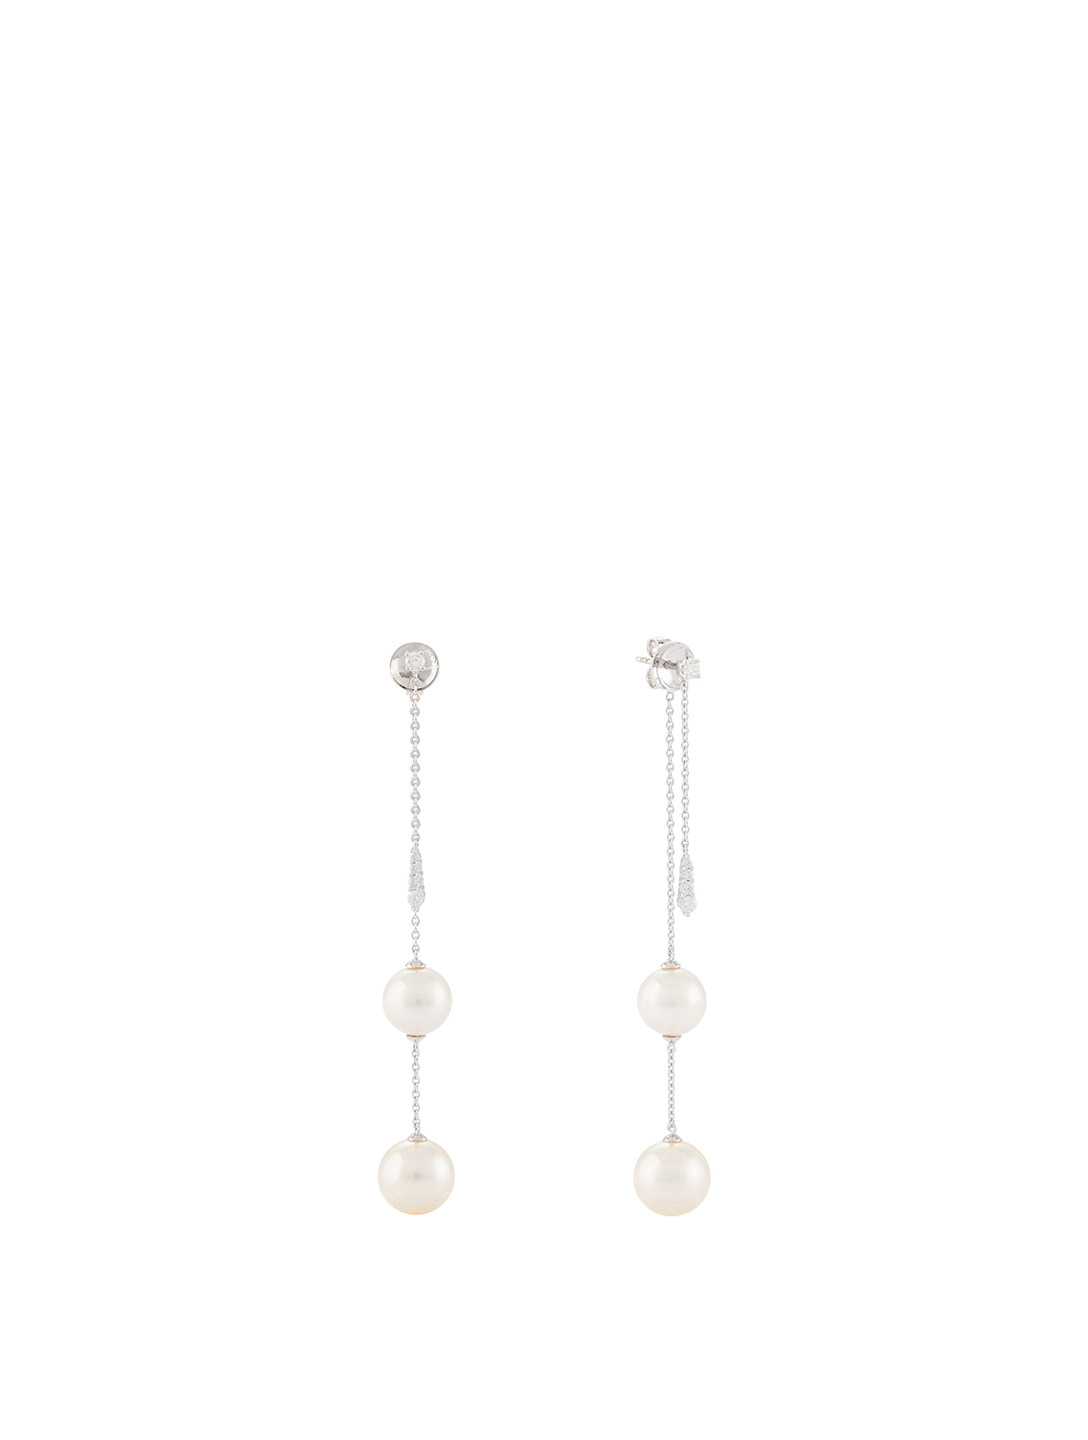 YOKO LONDON 18K White Gold Double Chain Drop Earrings With Pearls And Diamonds Womens White